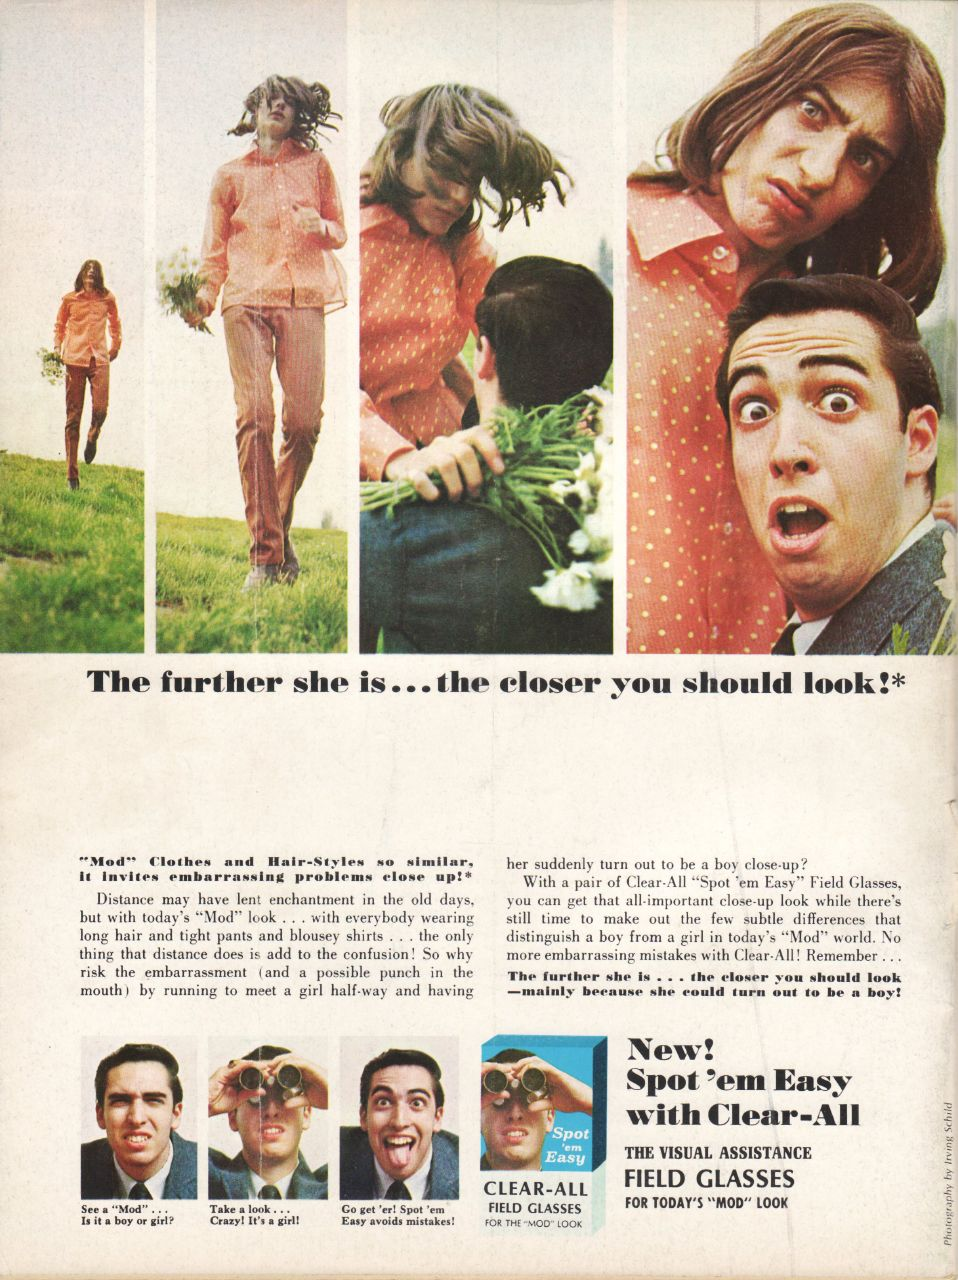 MAD Magazine March 1968